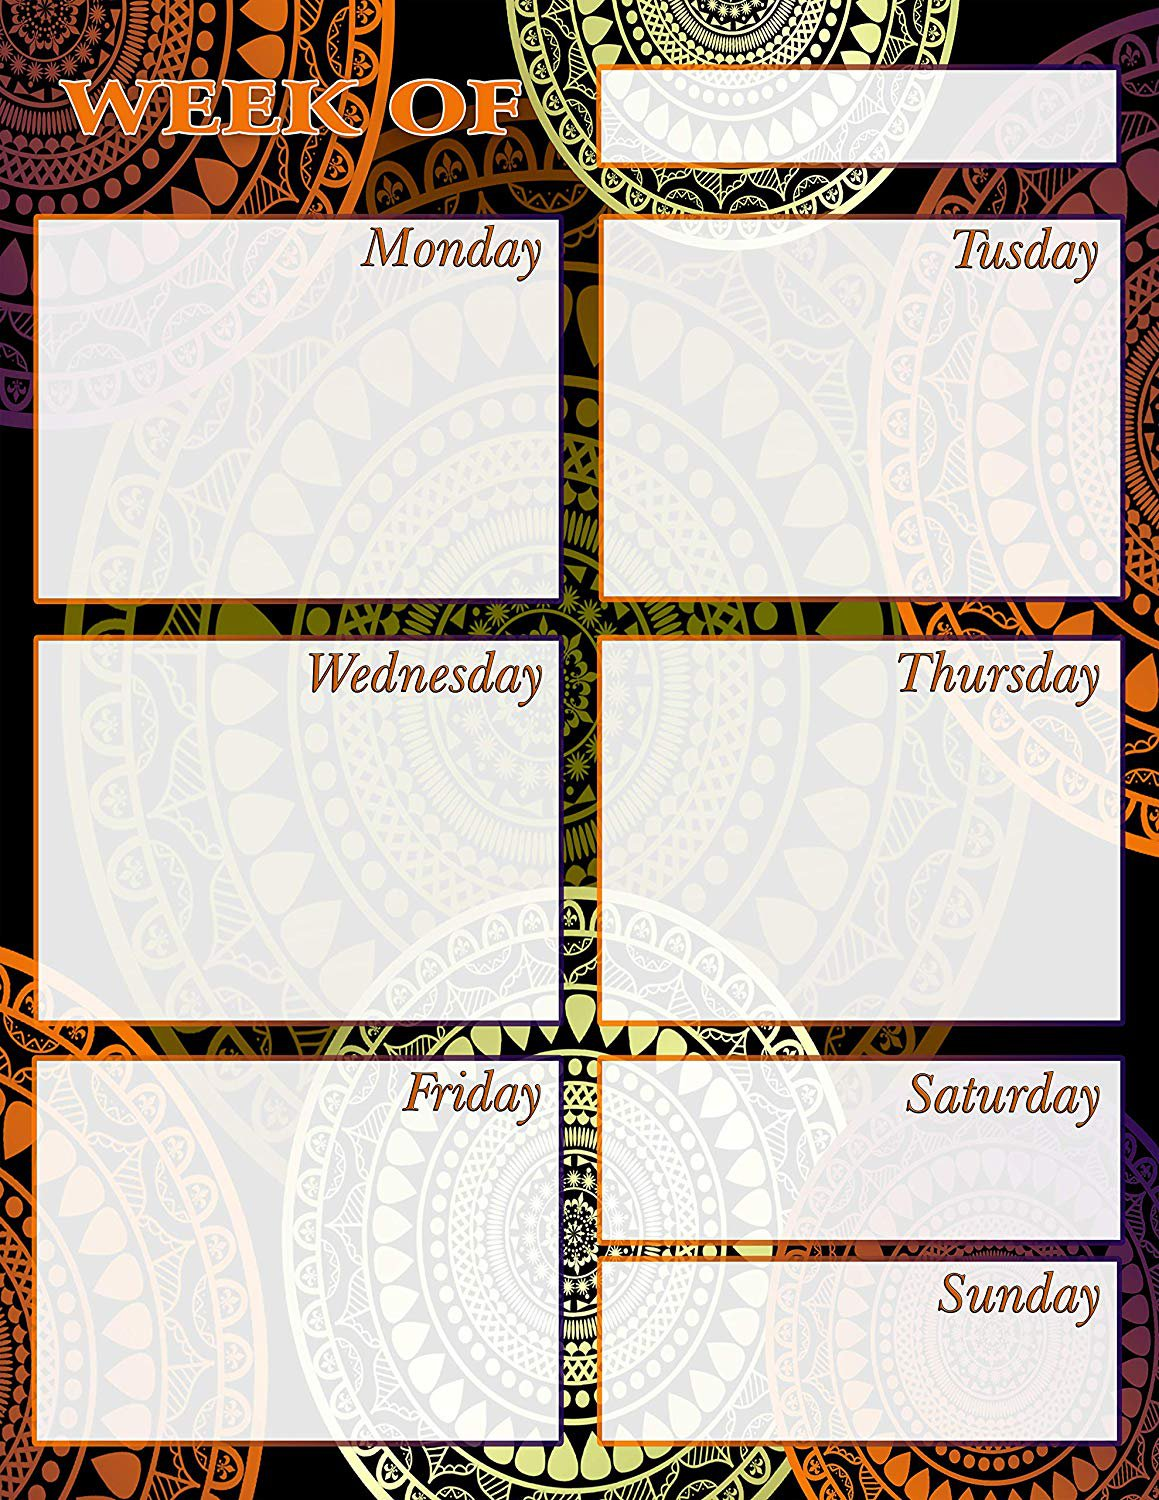 Chore Chart/Weekly Planner/to Do List/Message Board